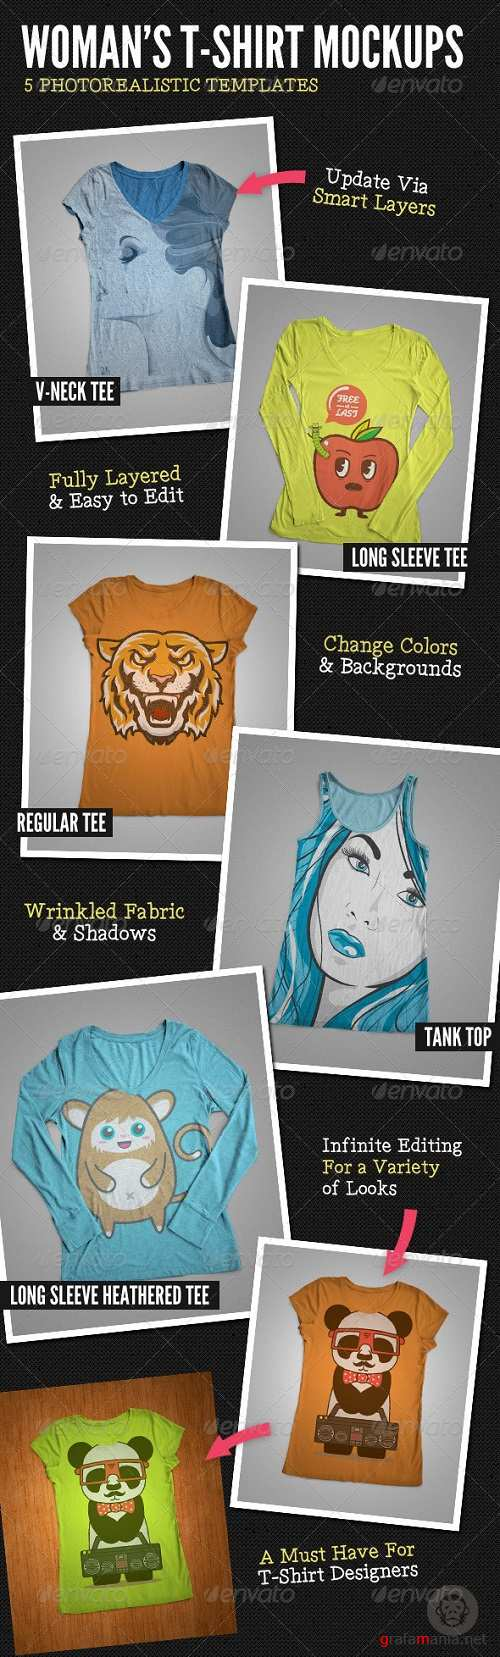 Ladies T-Shirt Mock-Ups - 6112581